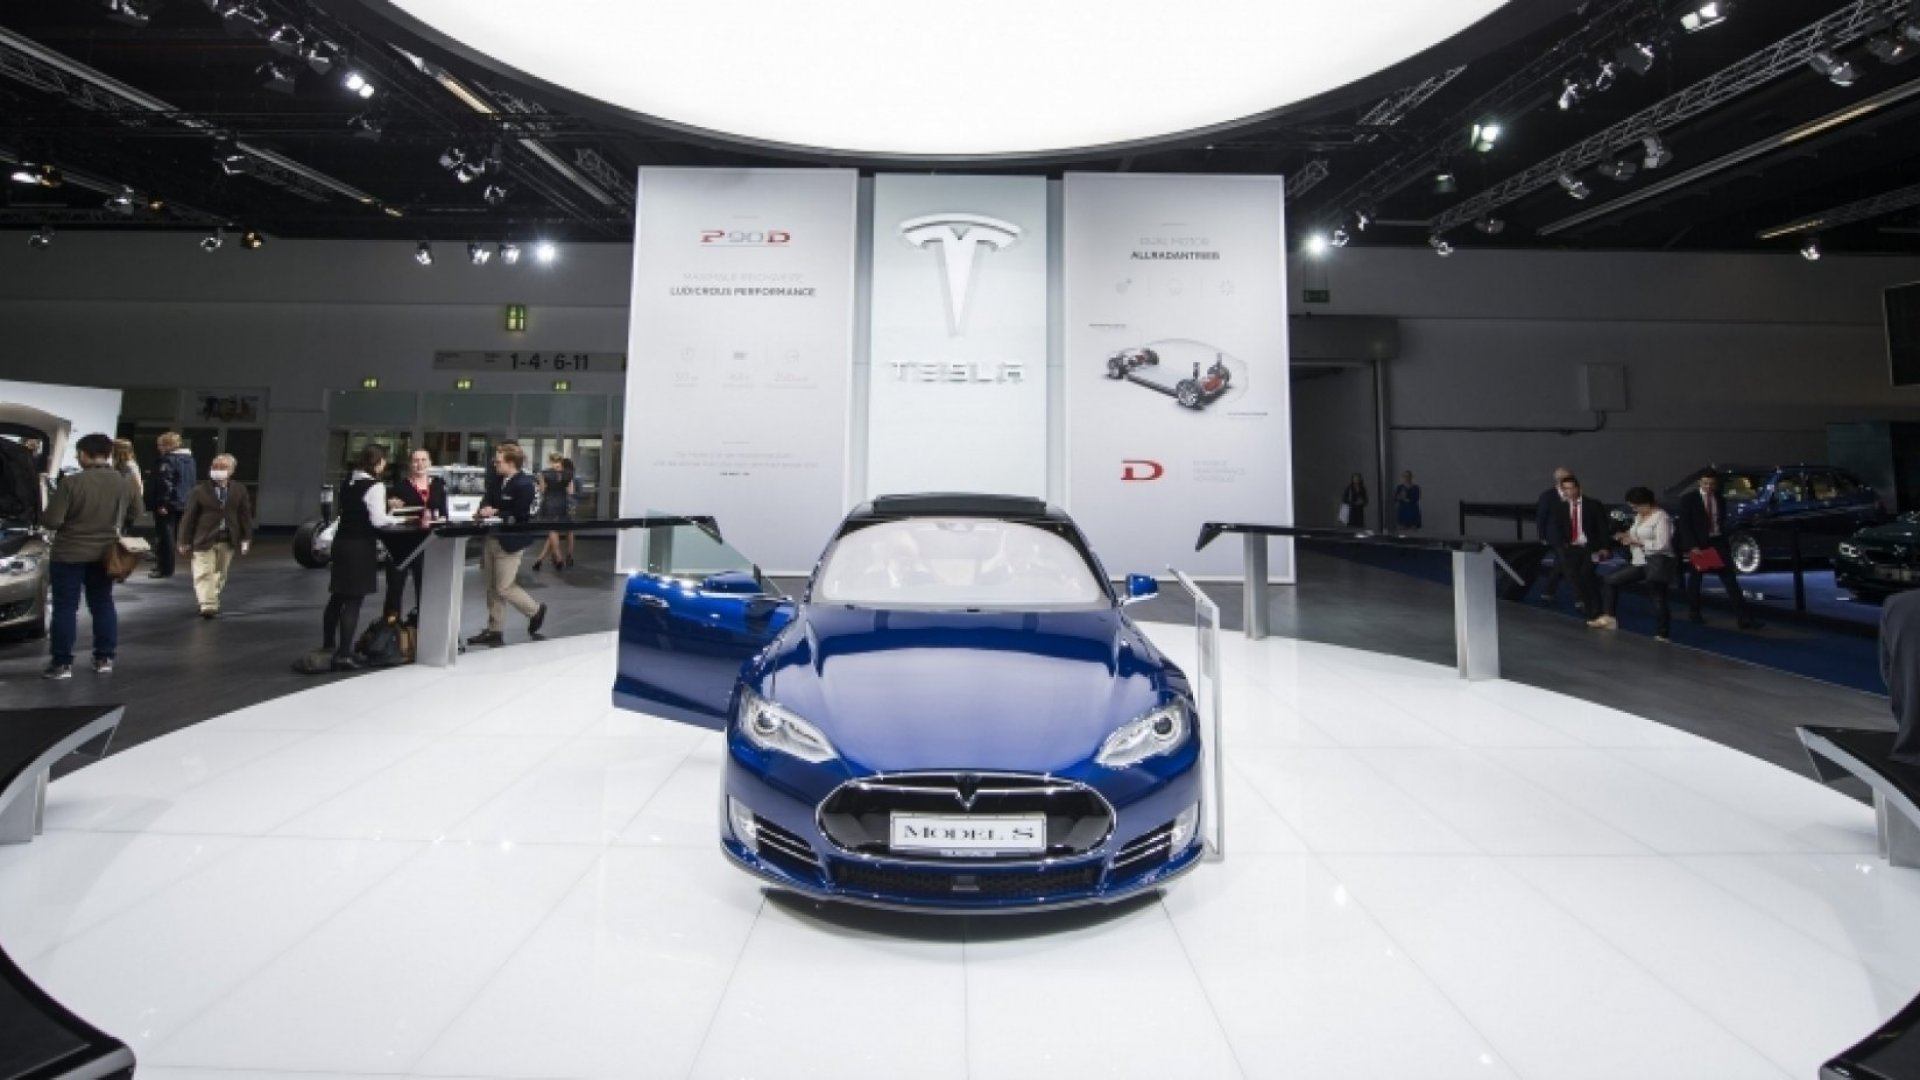 Meet the Company That Wants to Beat Tesla at Its Own Game